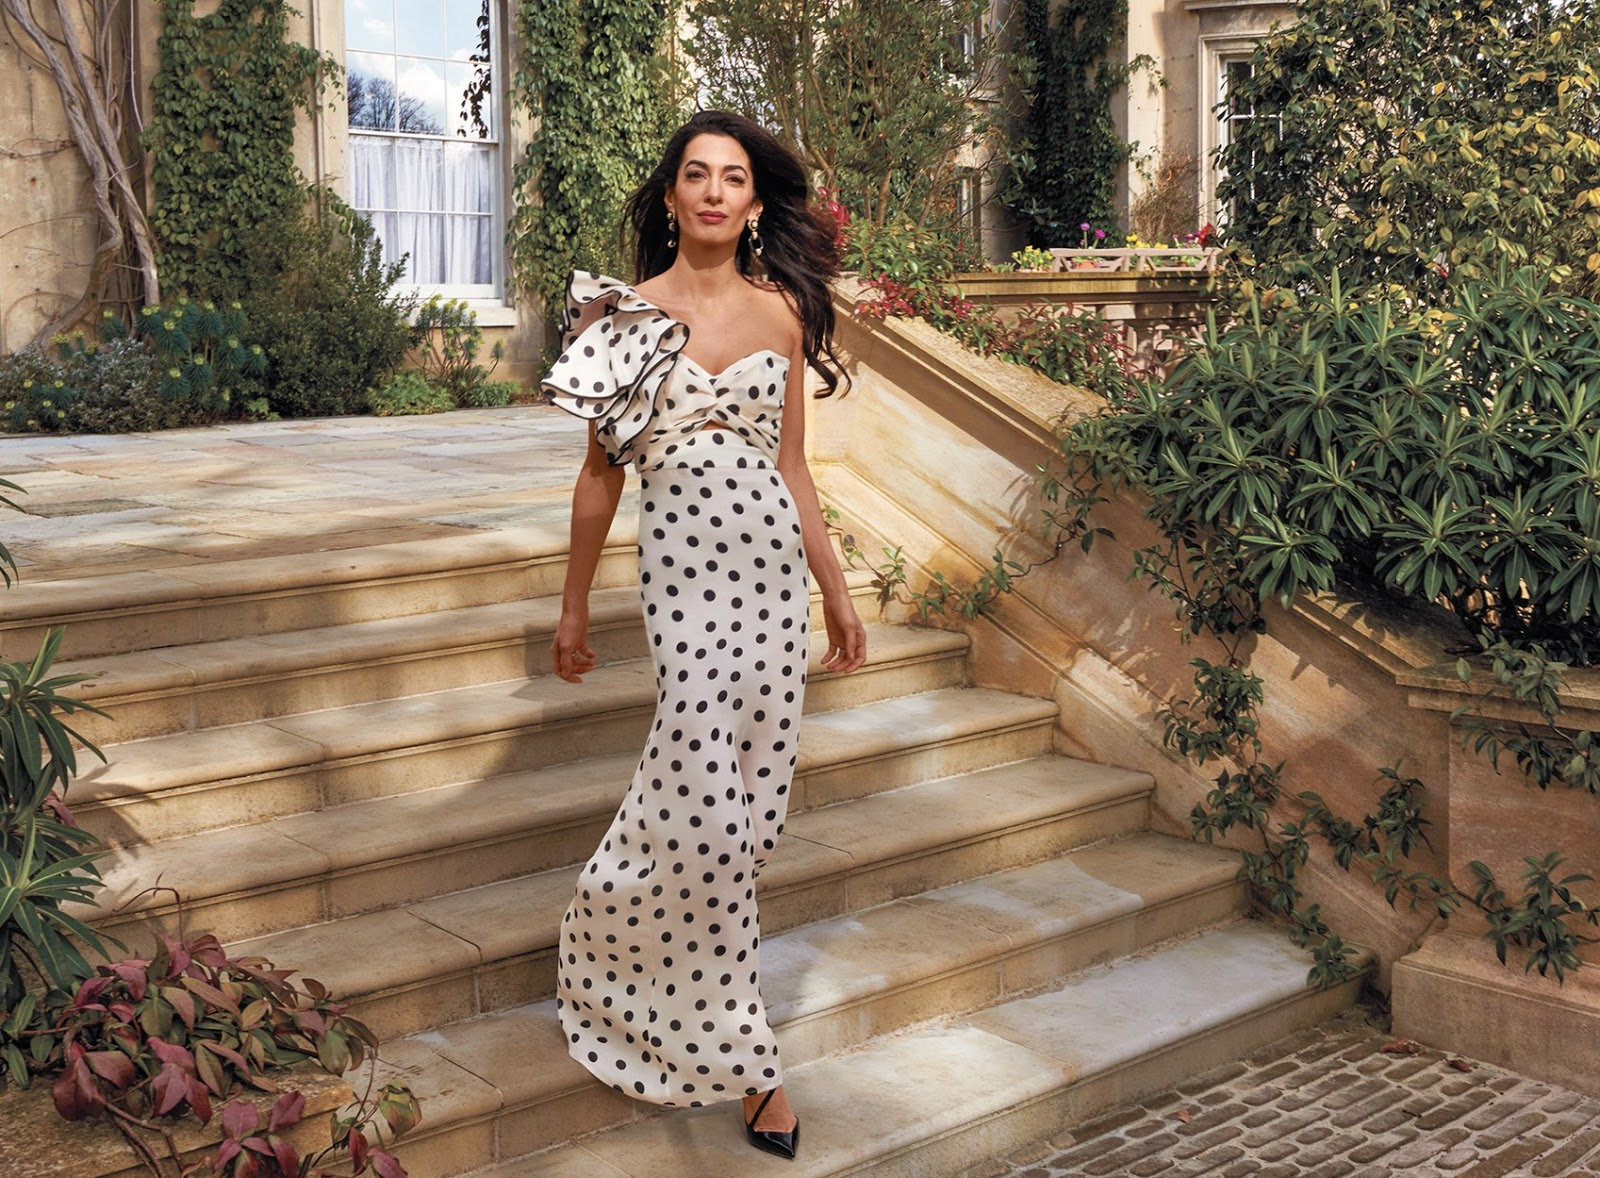 Amal Clooney for Vogue US May 2018